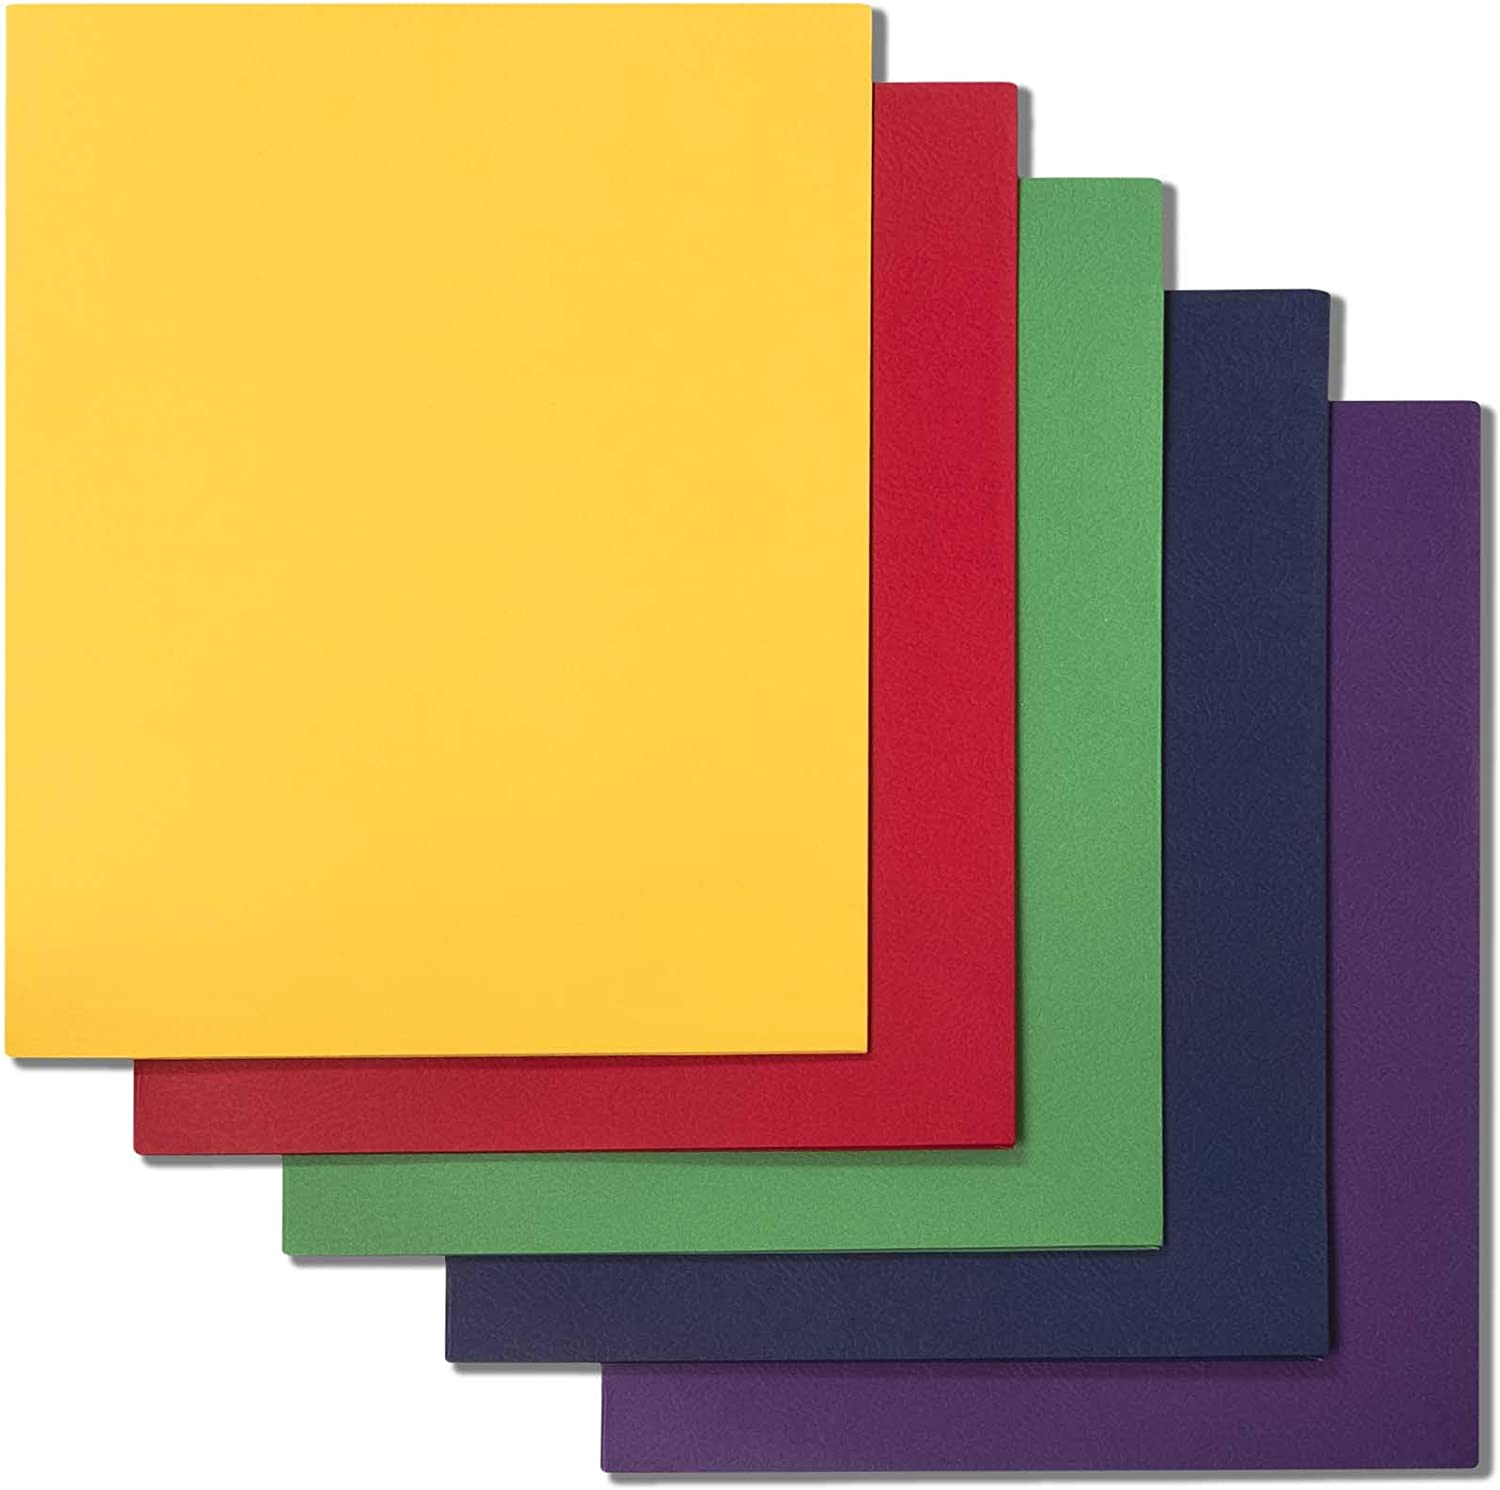 Ensight 50 Pack Two Pocket Folders, Use for School Classroom and Office, Textured Paper, Holds 100 Letter Size Sheets, Assorted Colors